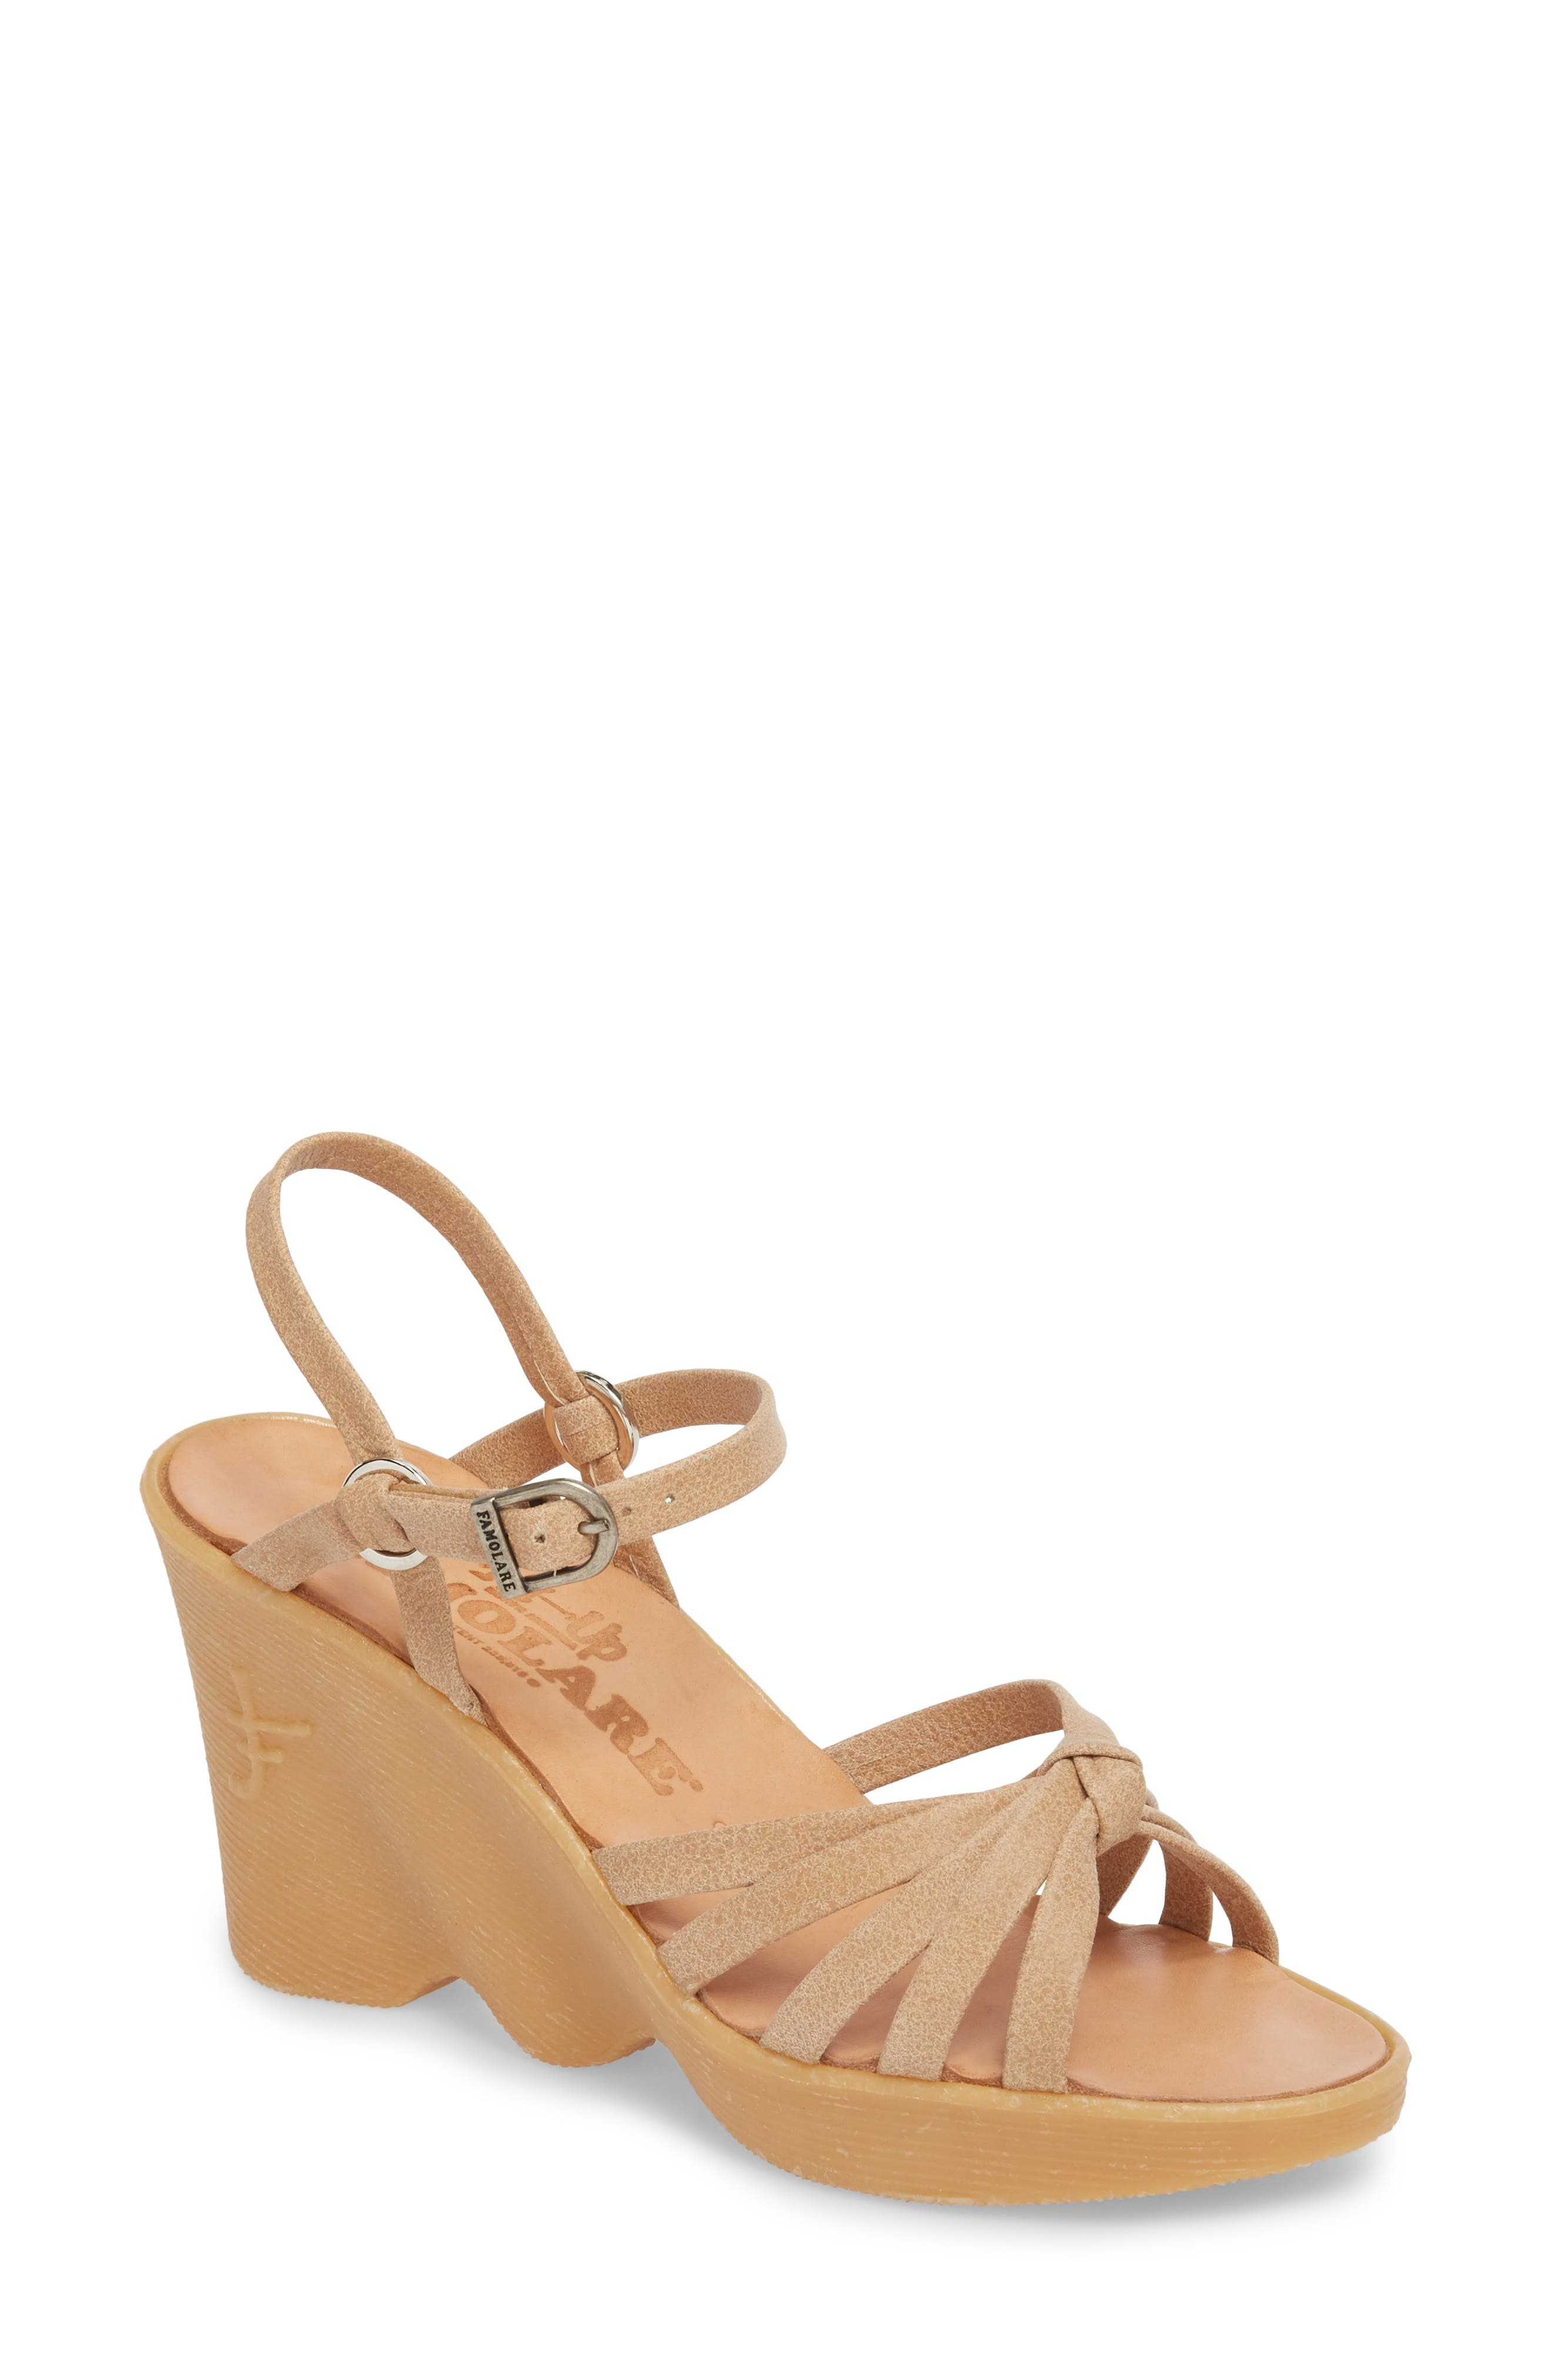 FAMOLARE,                             Knotty Monkey Wedge Sandal,                             Main thumbnail 1, color,                             NUDE LEATHER